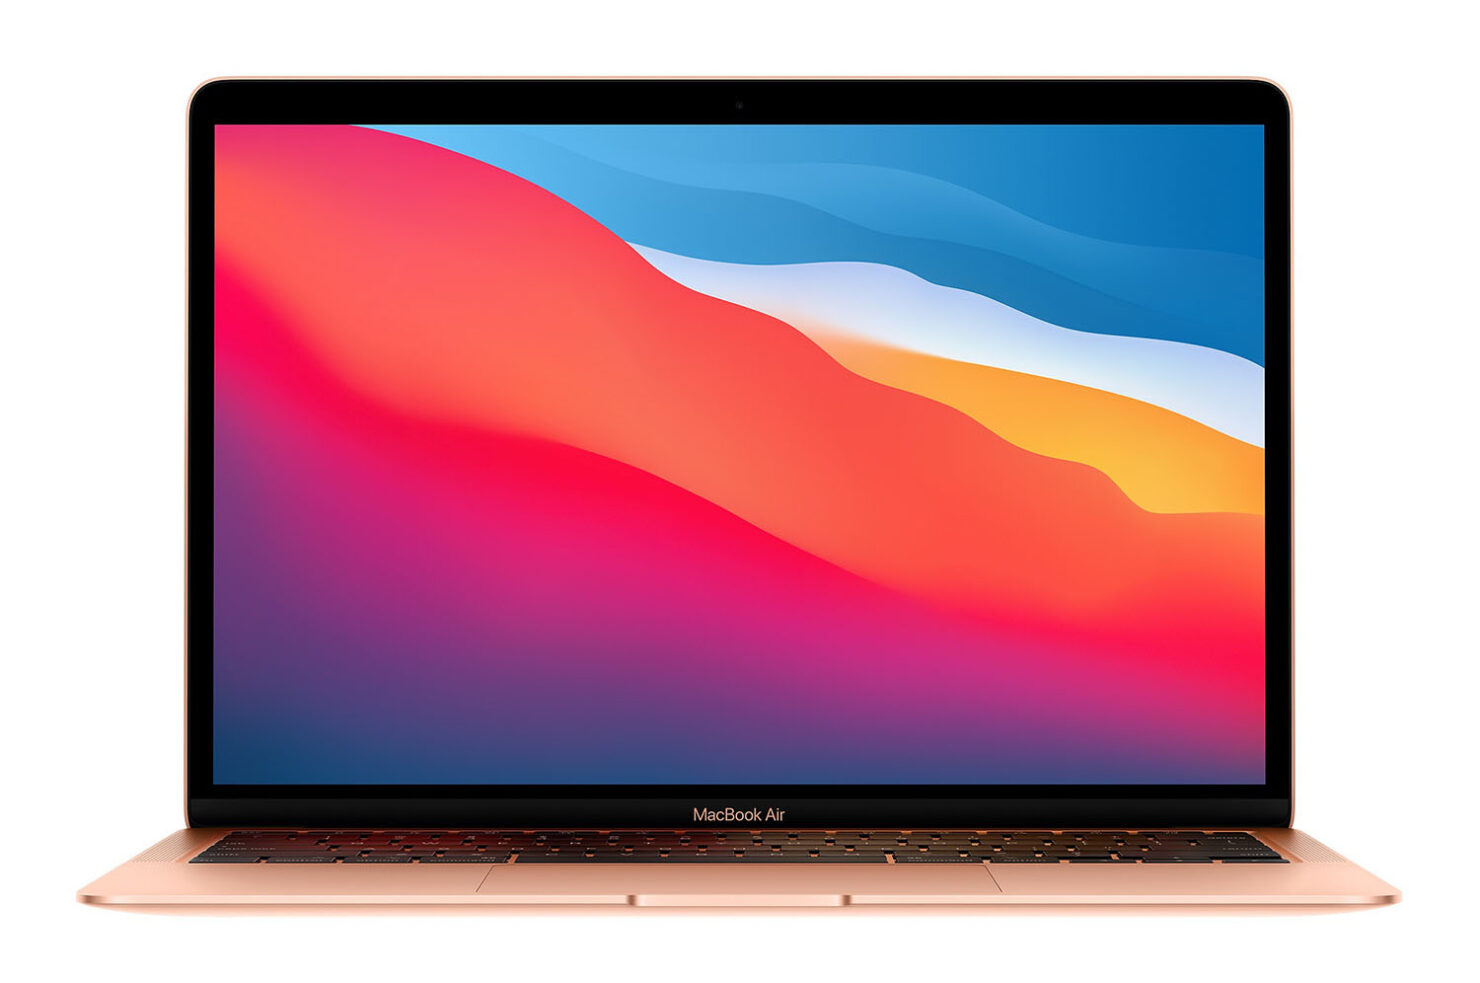 Apple's M1 MacBook Air Drops to Its Best Price yet at $150 off [16GB Unified RAM & Higher Storage Configurations Available Too]